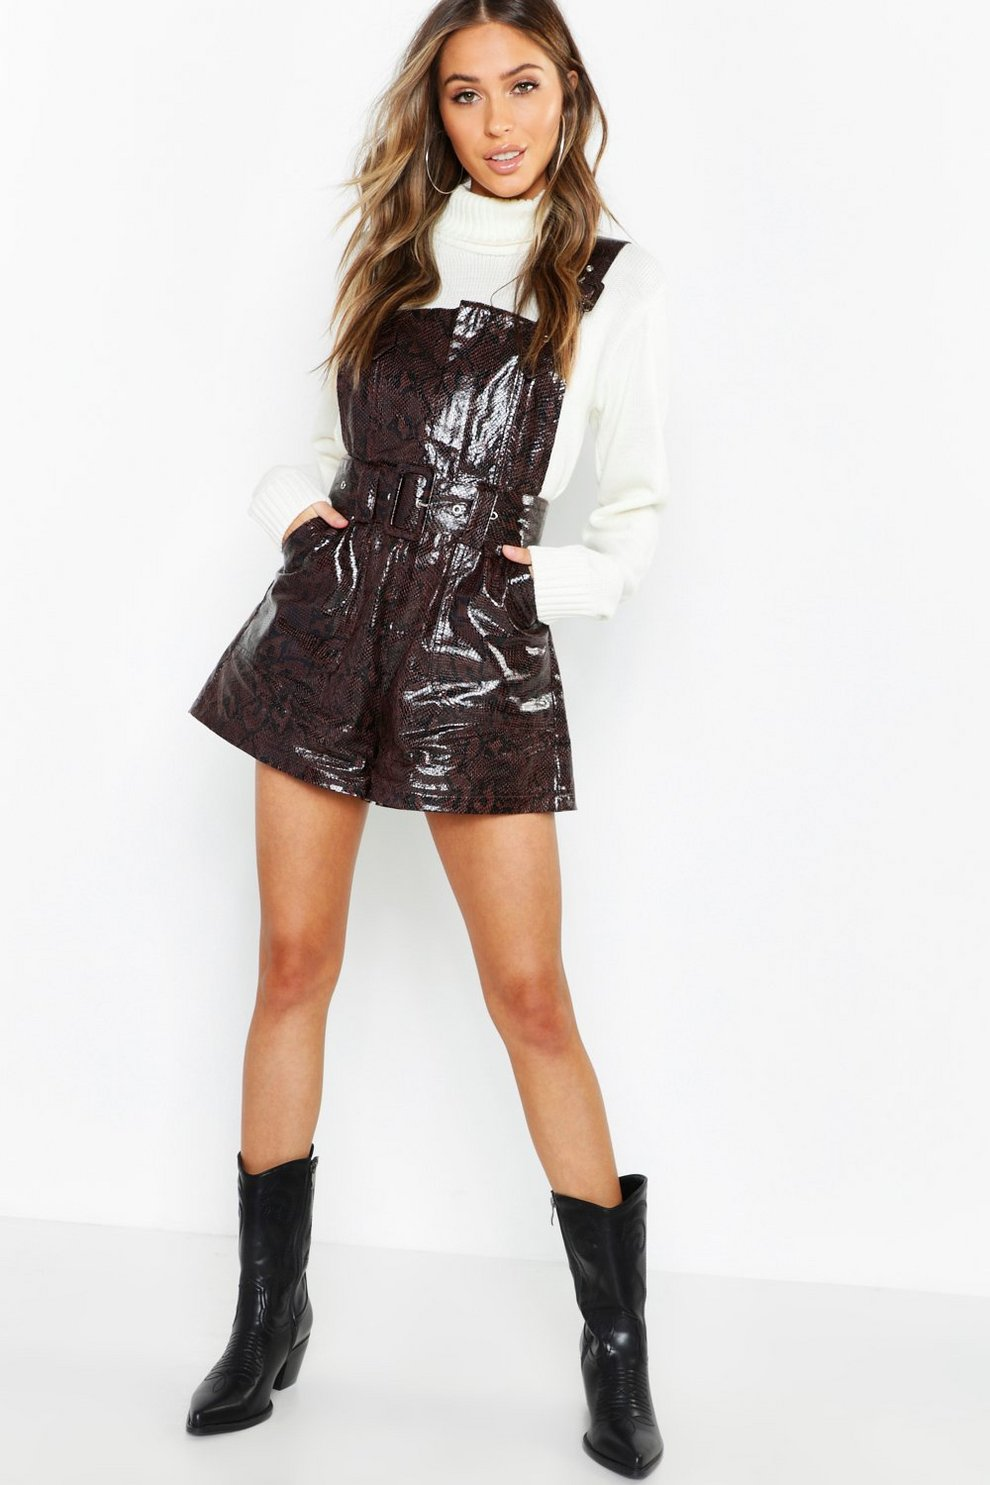 66f83948f6 Snake Print Leather Look Buckle Romper